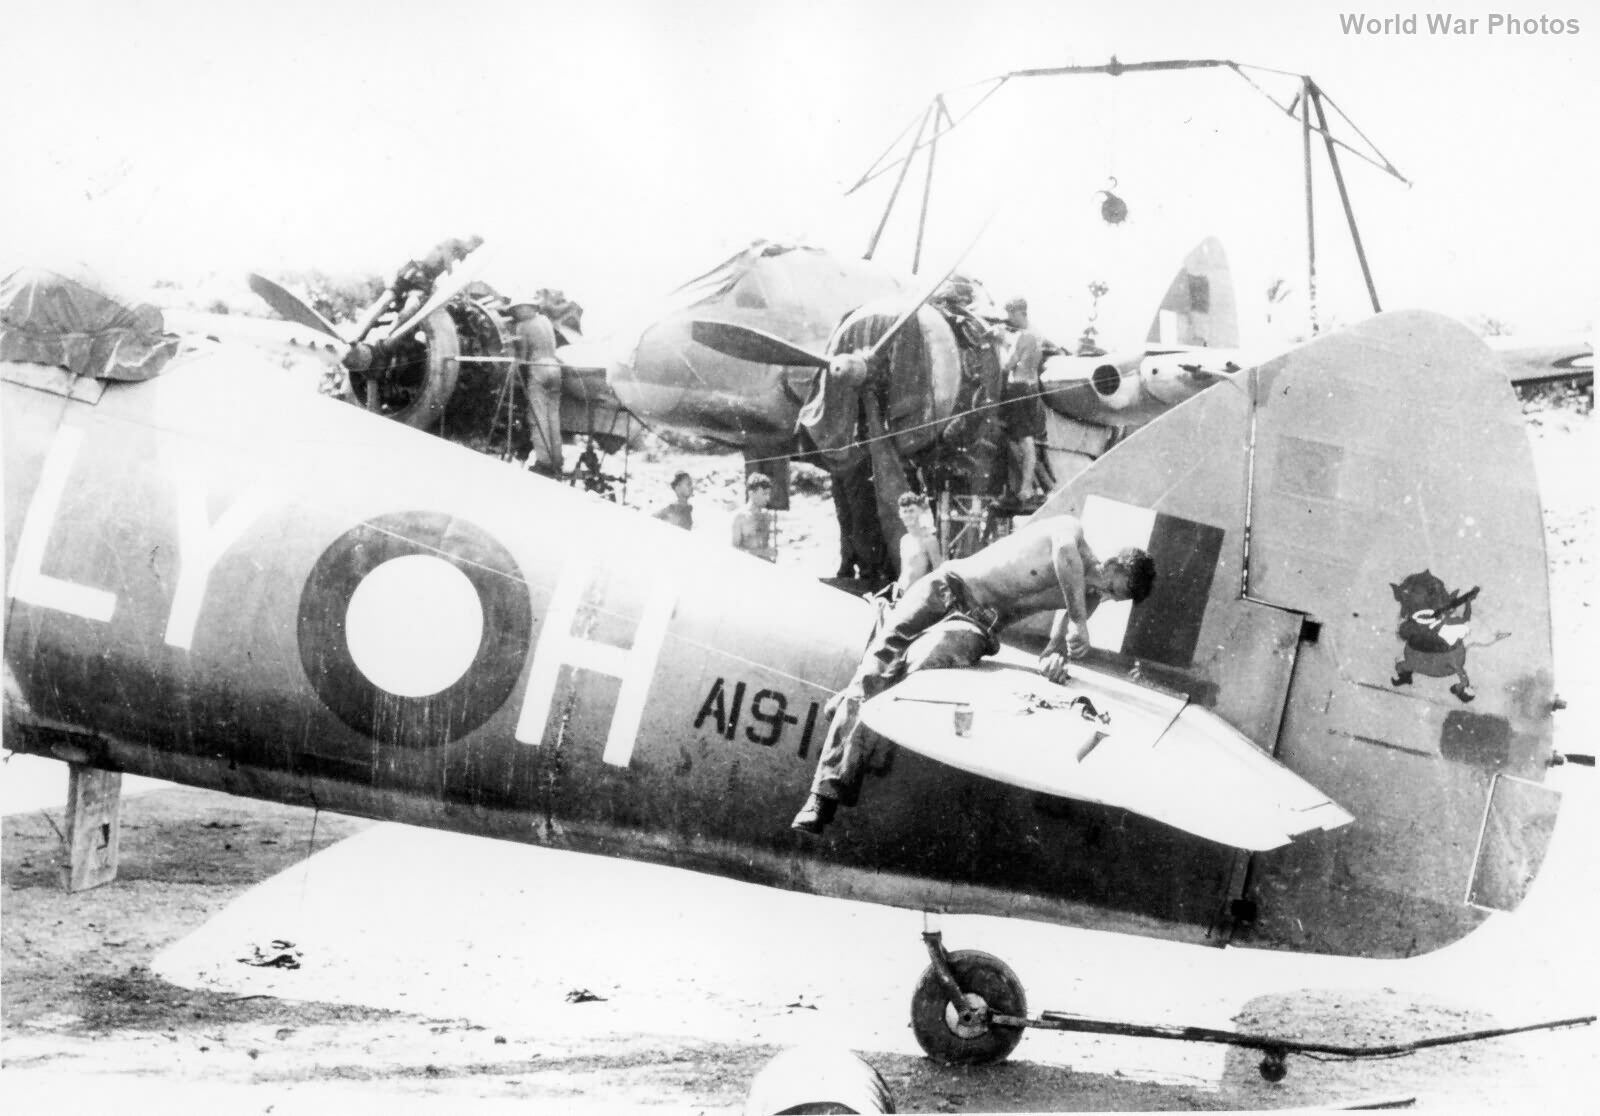 Beaufighter A19-120 30 Sqn